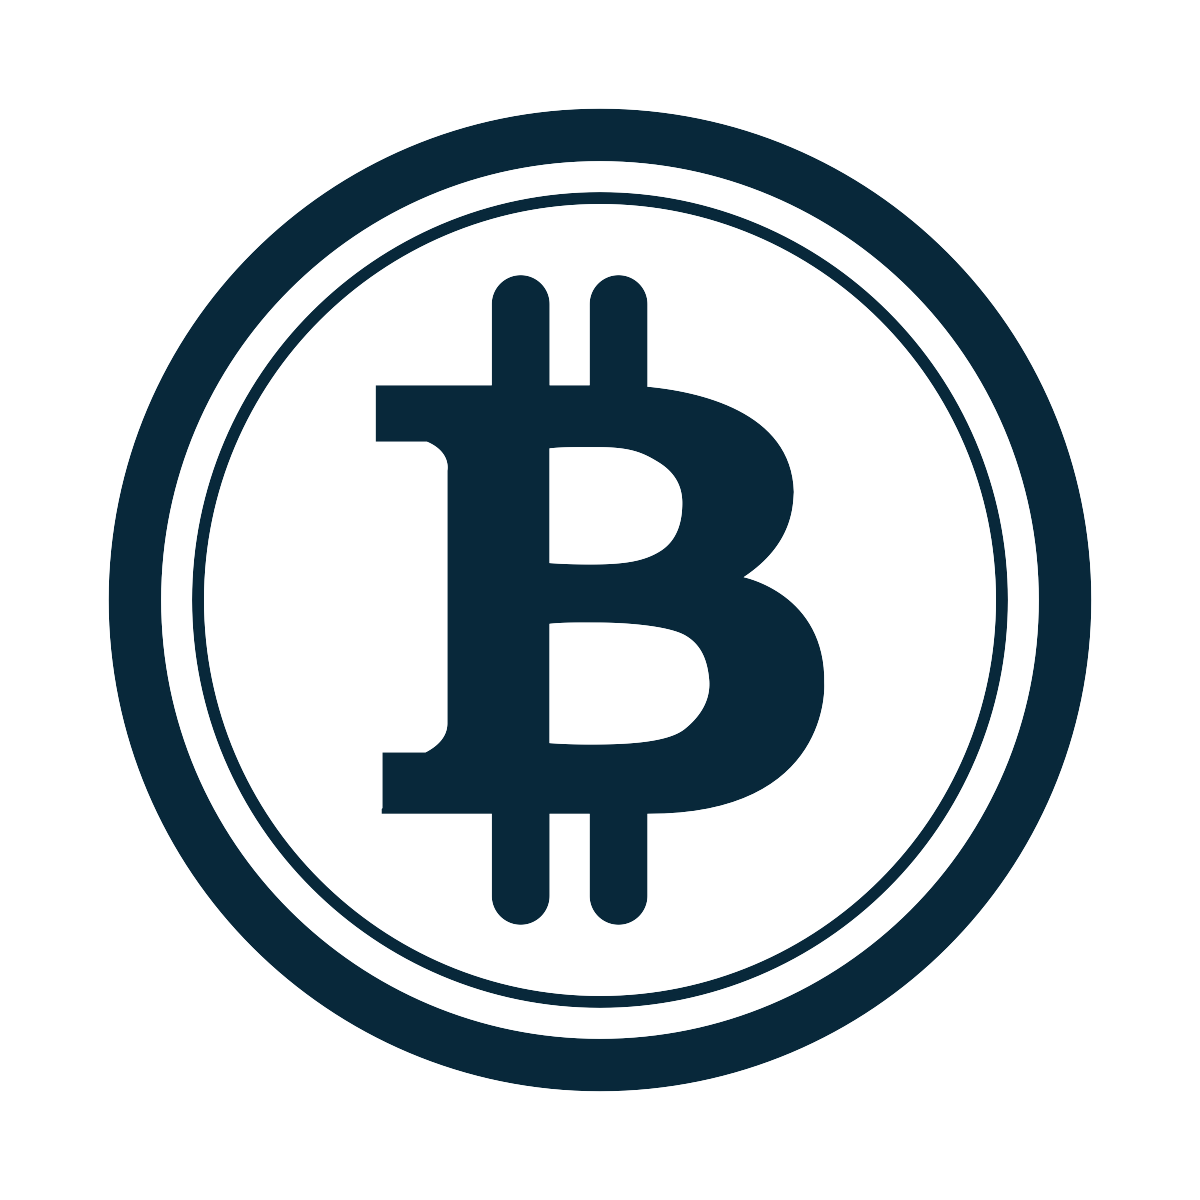 Download Icons Blockchain Bitcoin Cryptocurrency Computer Logo ICON.